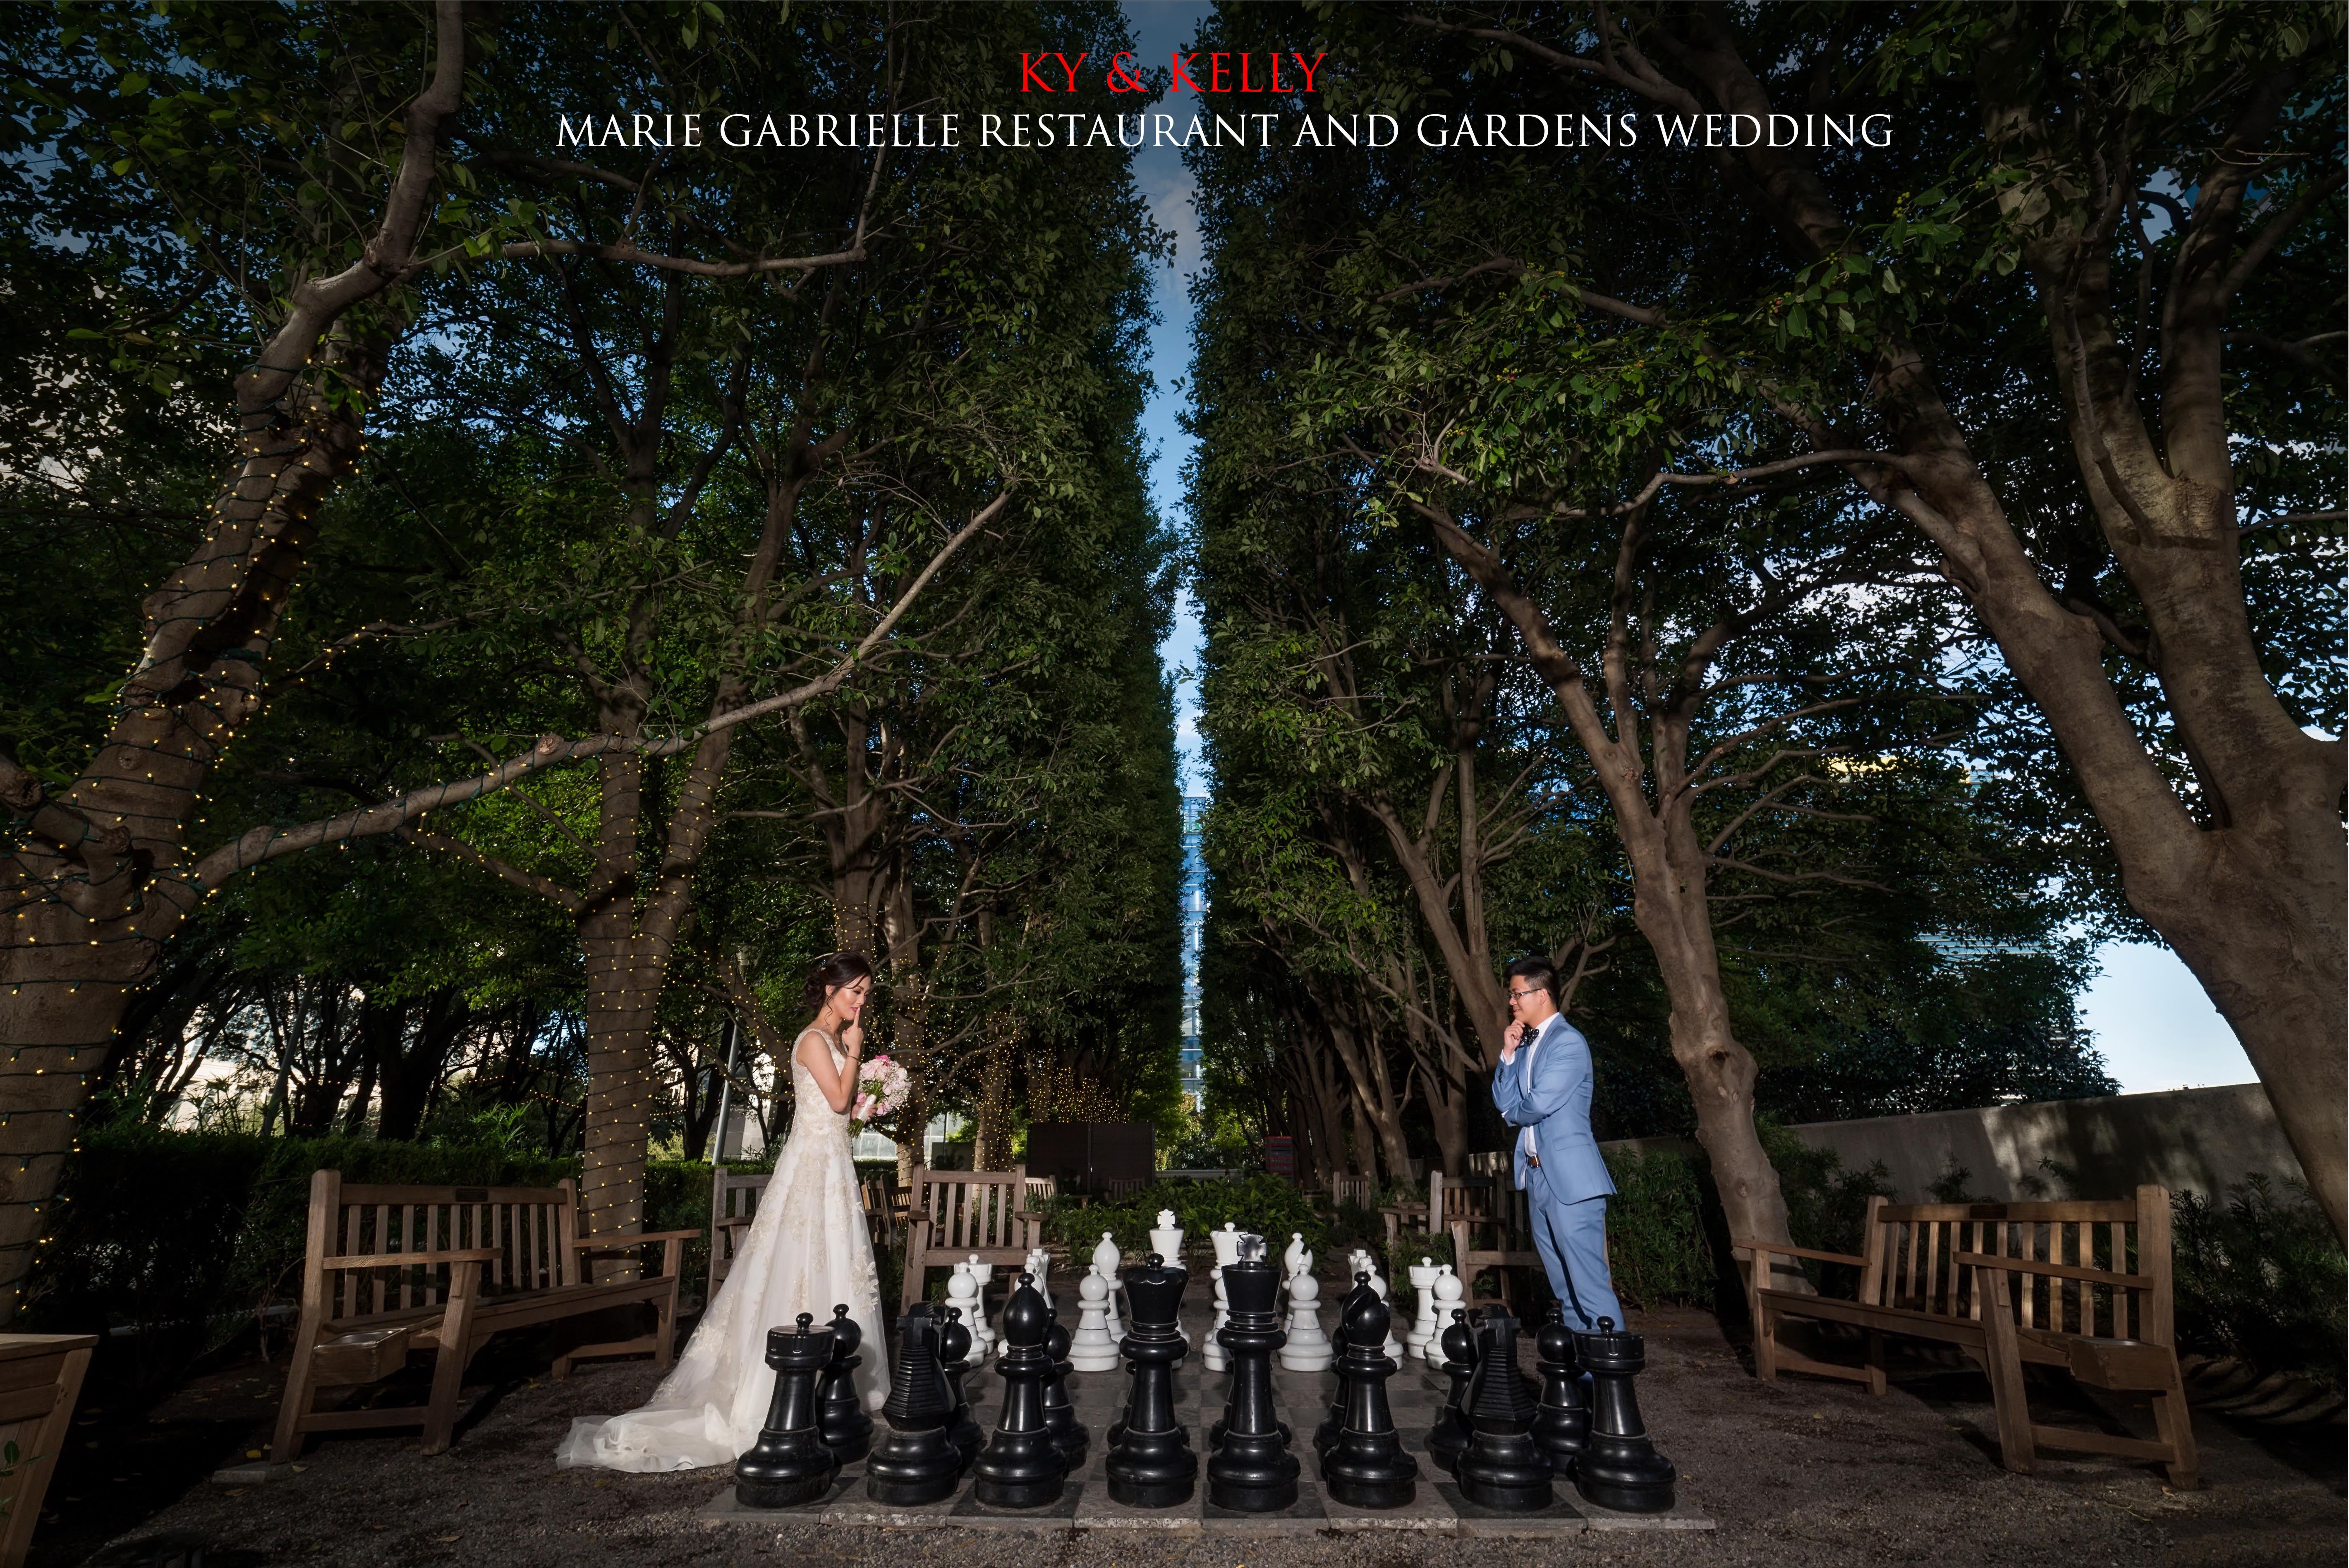 Marie Gabriell Restaurant Wedding